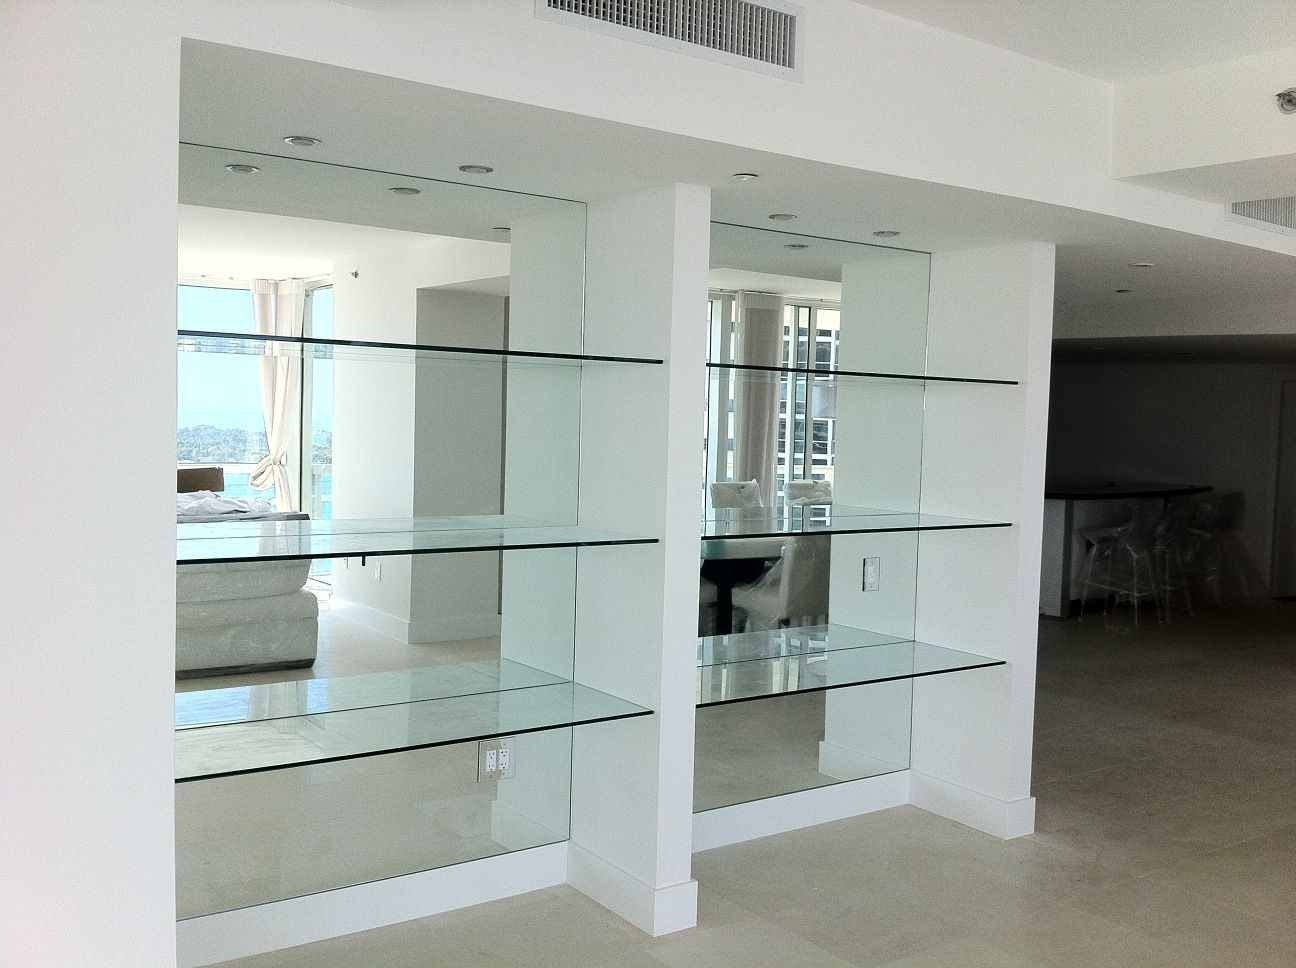 Mirror glass shelves google search shop2 pinterest glass mirror glass shelves google search amipublicfo Gallery